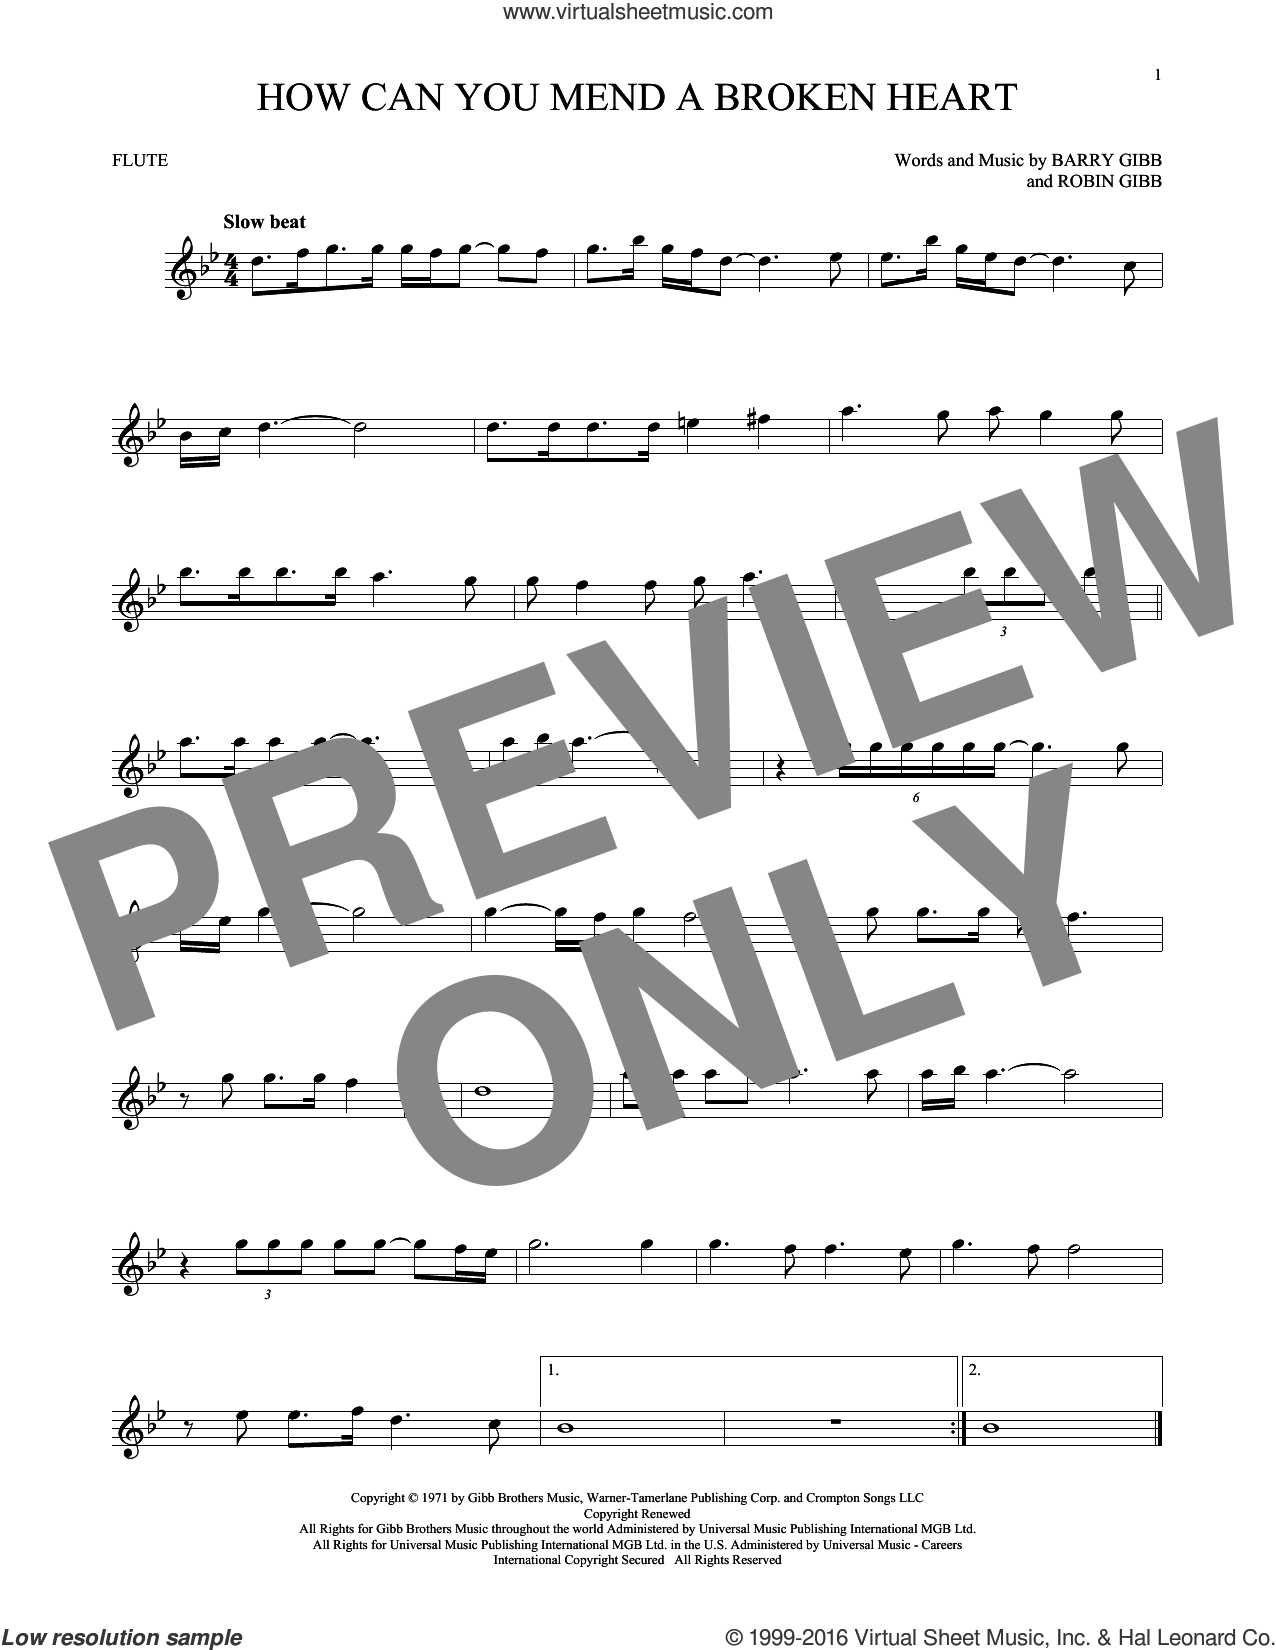 How Can You Mend A Broken Heart sheet music for flute solo by Robin Gibb, Bee Gees and Barry Gibb. Score Image Preview.